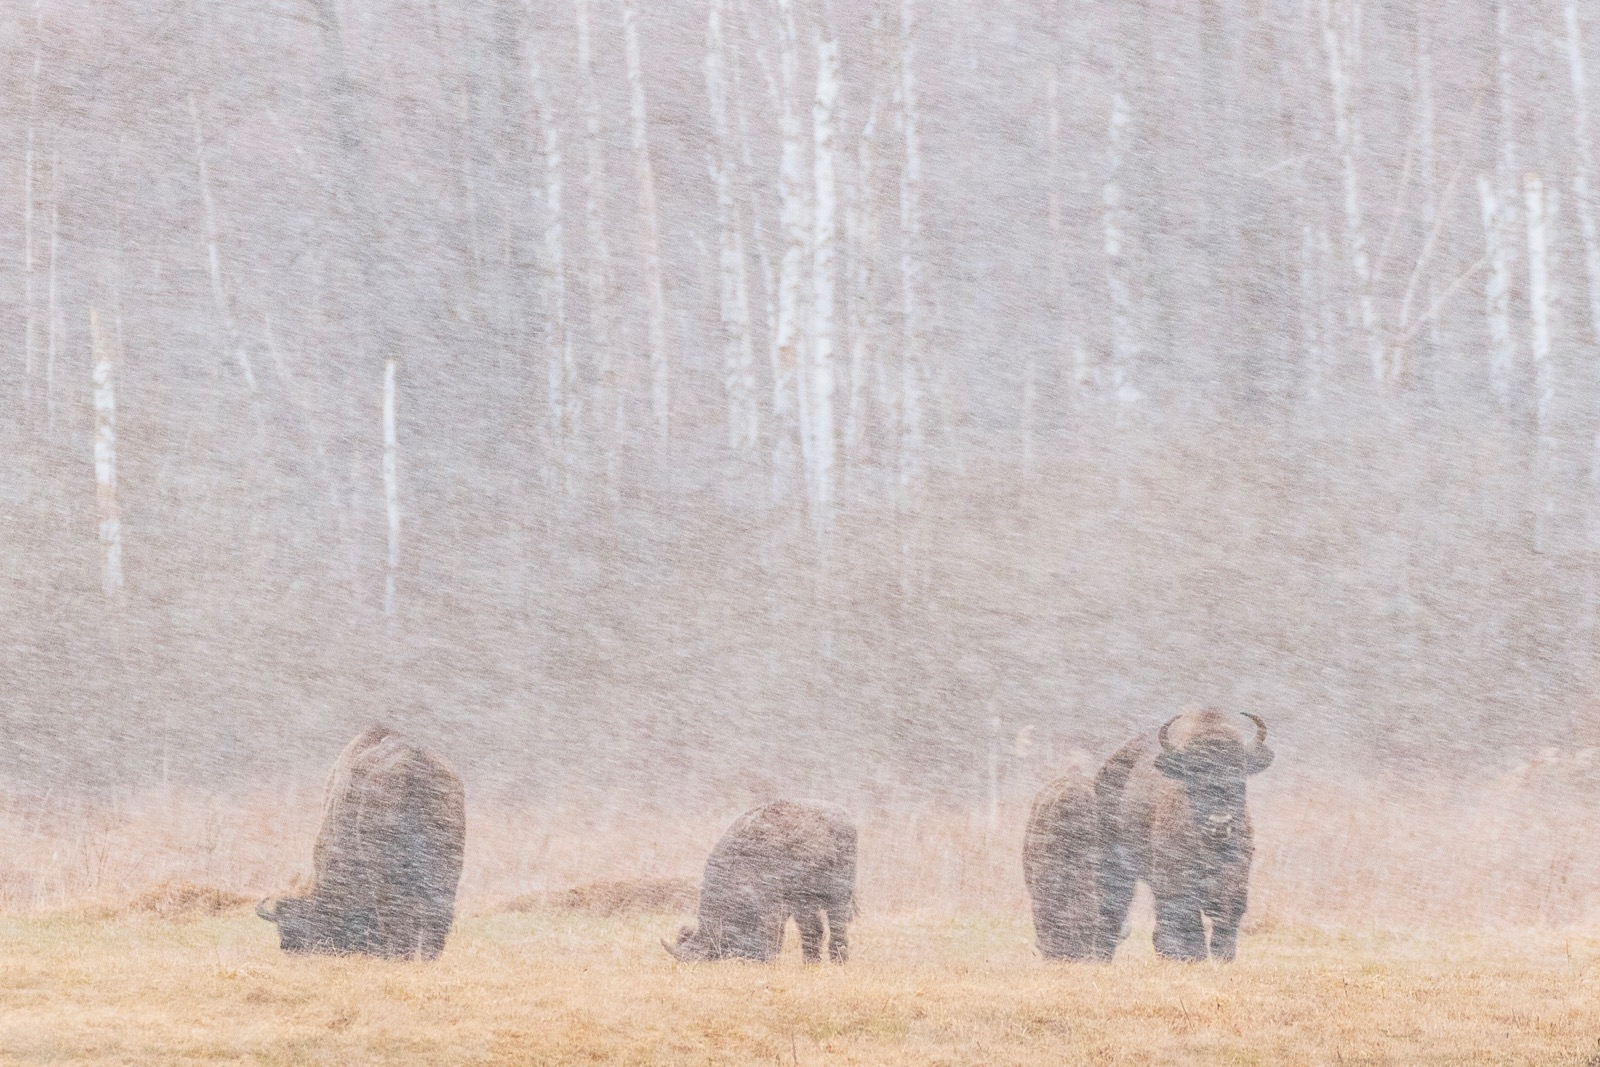 Bison in the snow, fossy spring weather in NE Poland, photo by Scott Scott & Rosemary Gilbertson